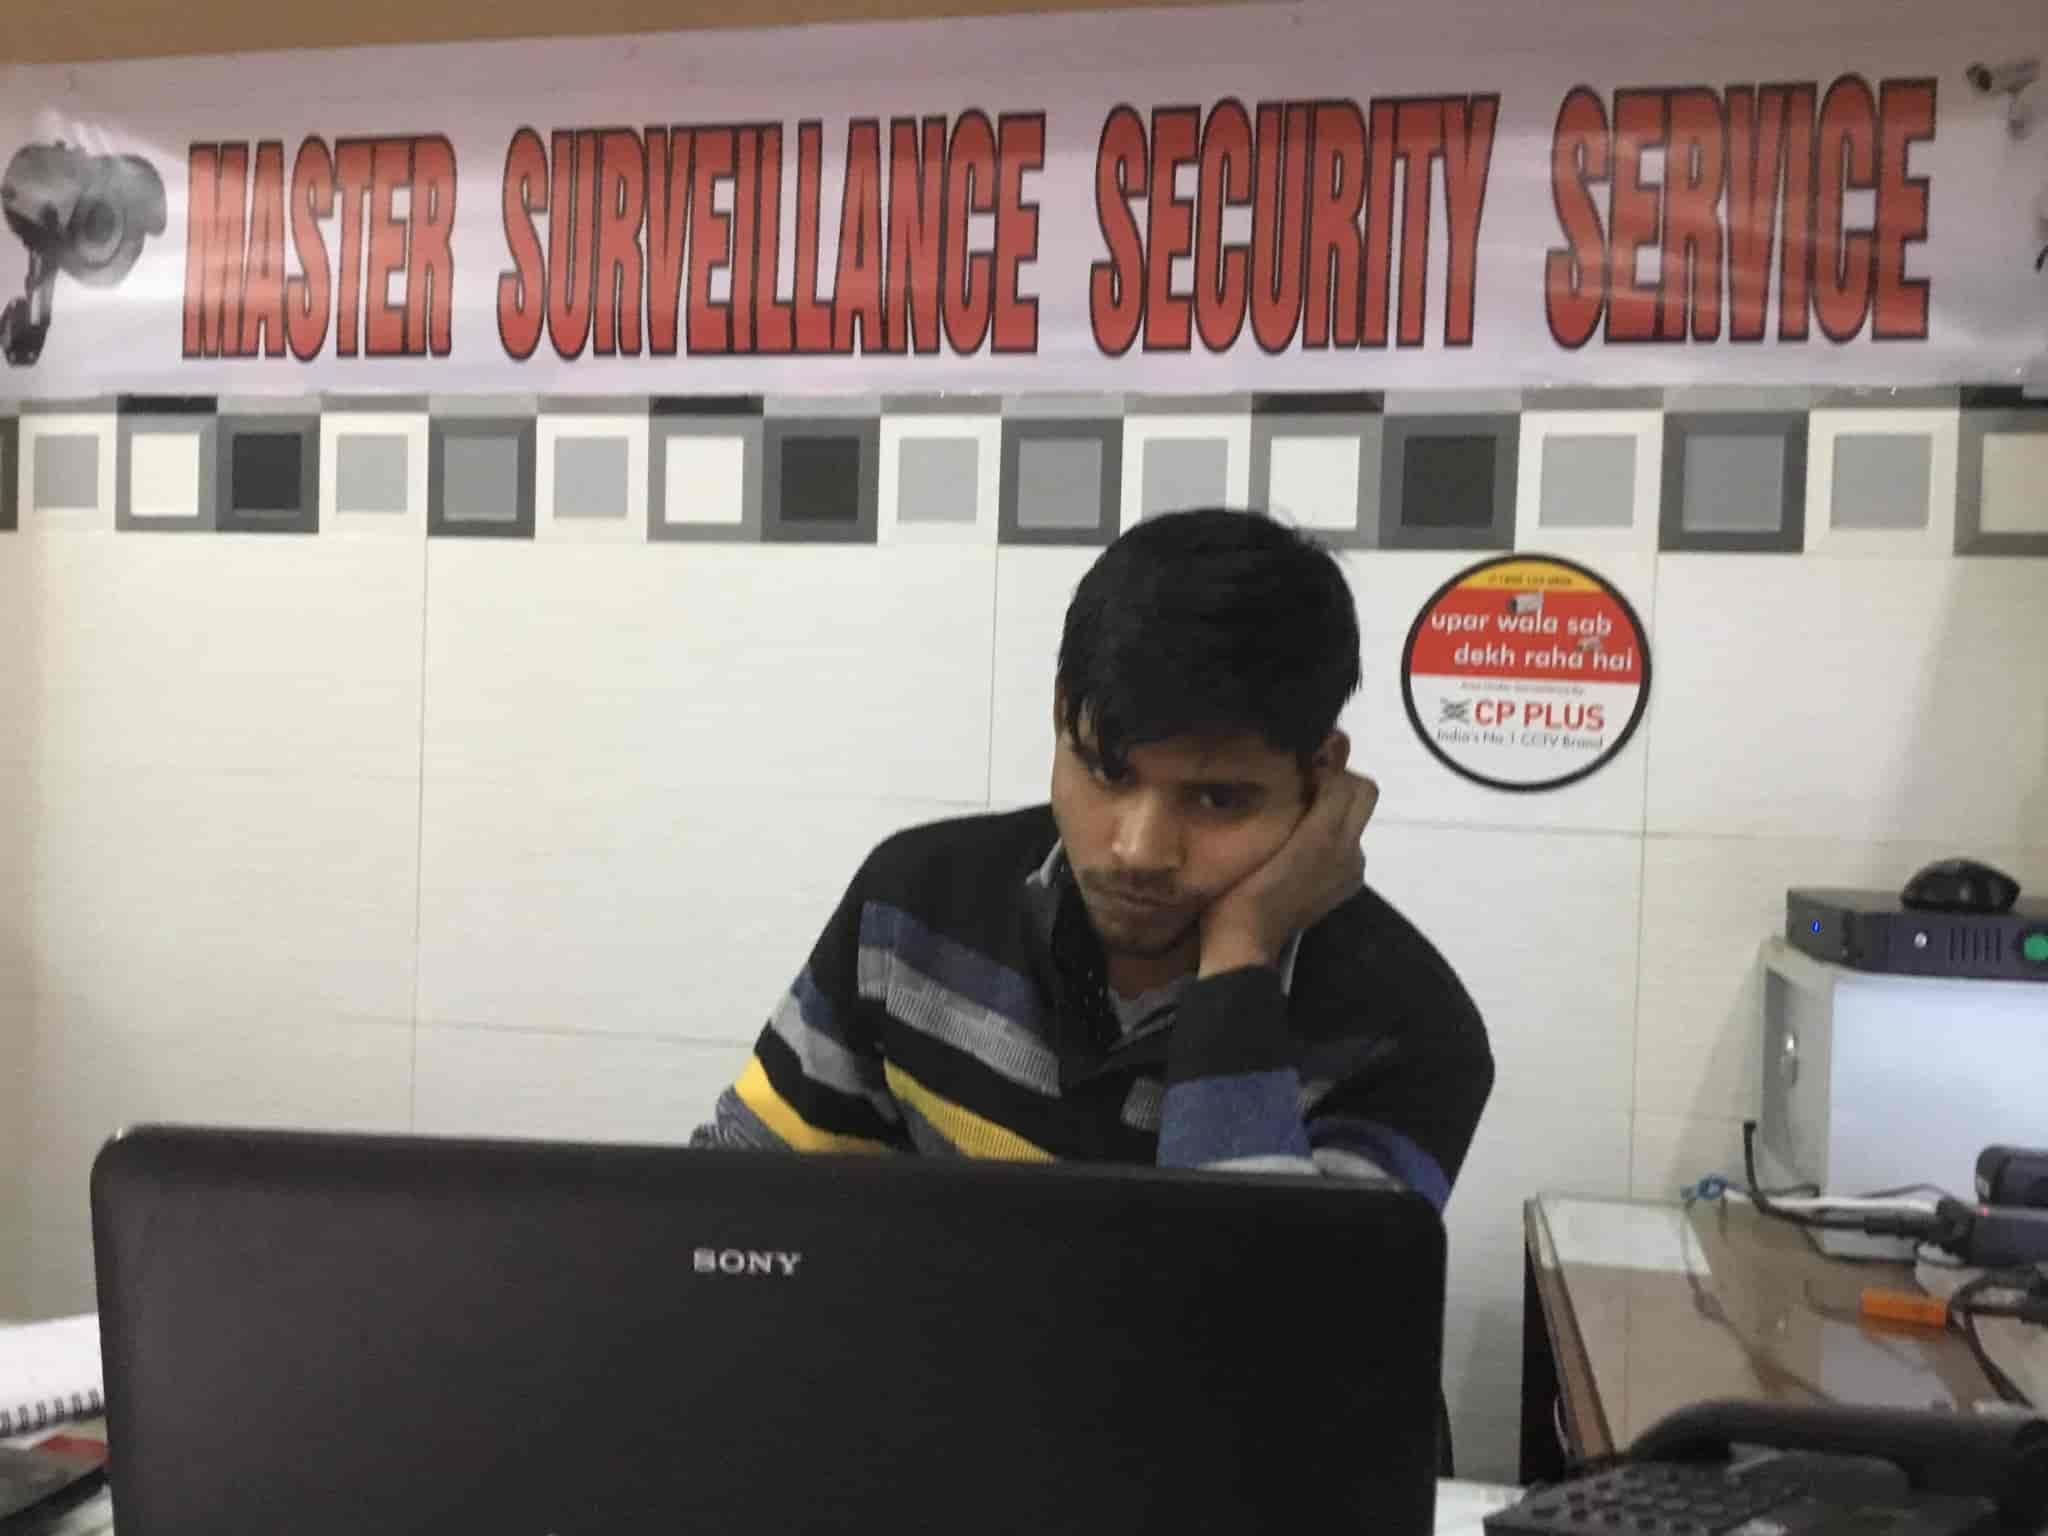 Master Surveillance Security Services Photos, Govind Puri